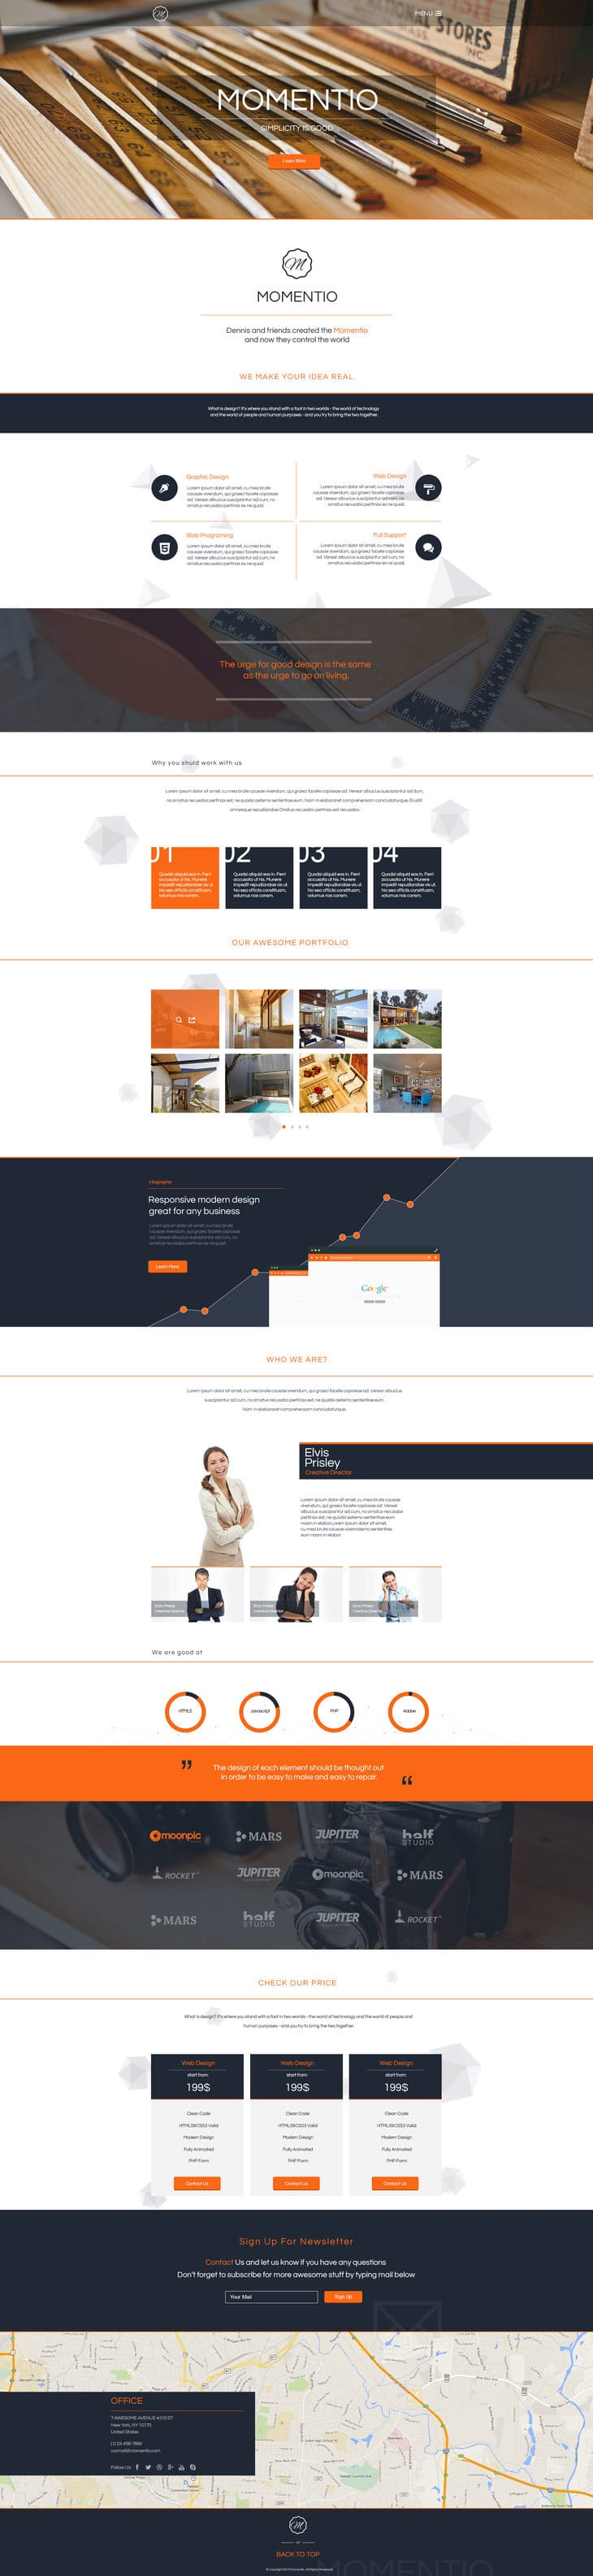 Momentio - Single Page Web Template PSD